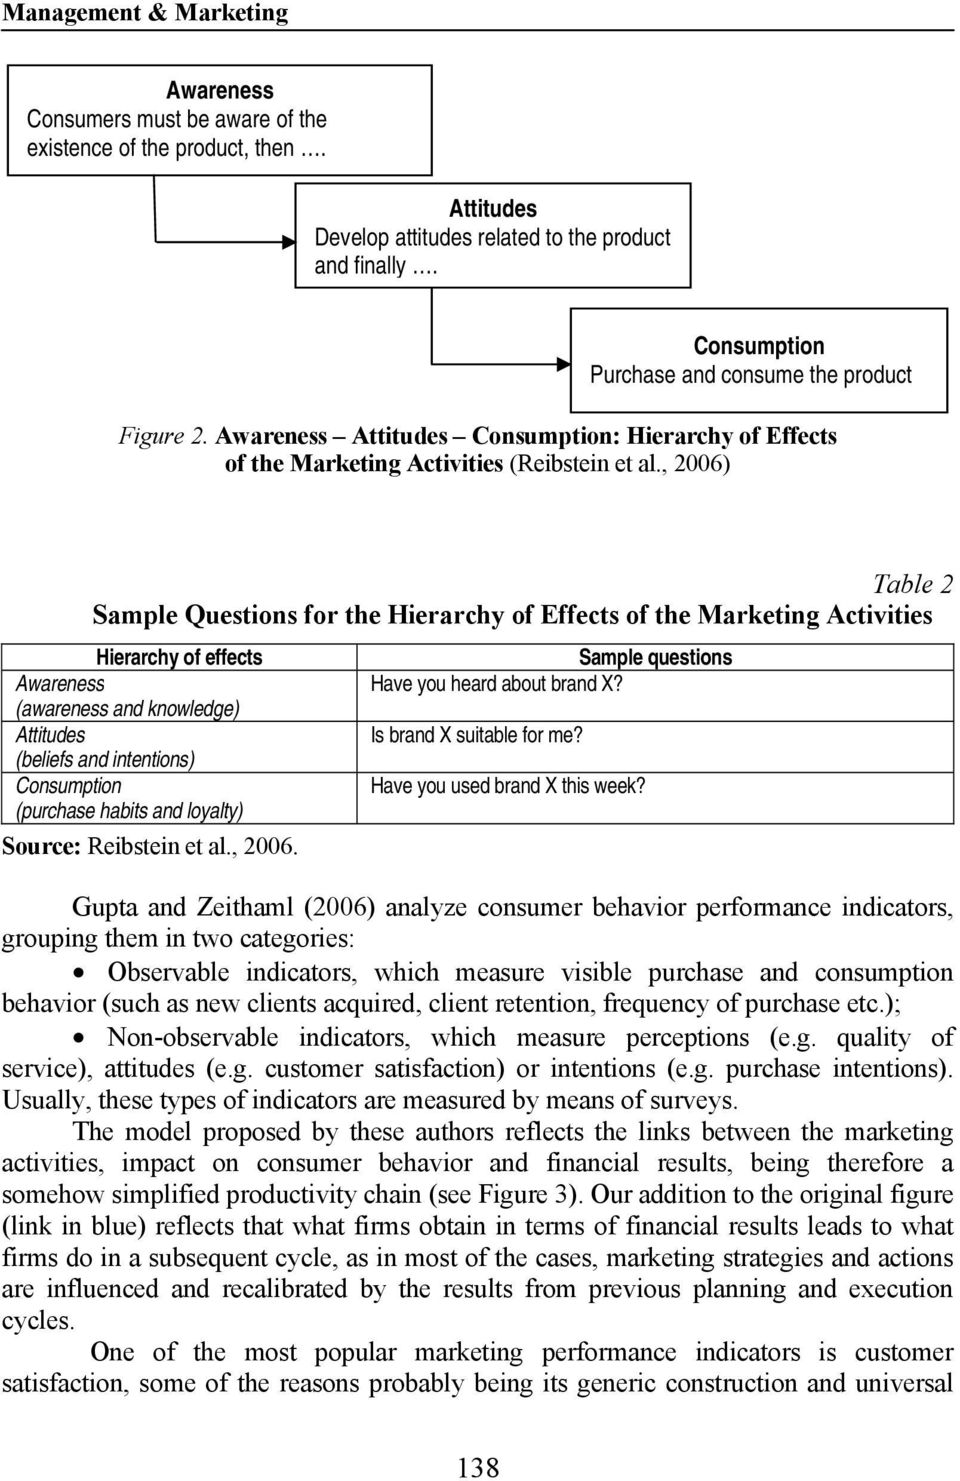 , 2006) Table 2 Sample Questions for the Hierarchy of Effects of the Marketing Activities Hierarchy of effects Awareness (awareness and knowledge) Attitudes (beliefs and intentions) Consumption